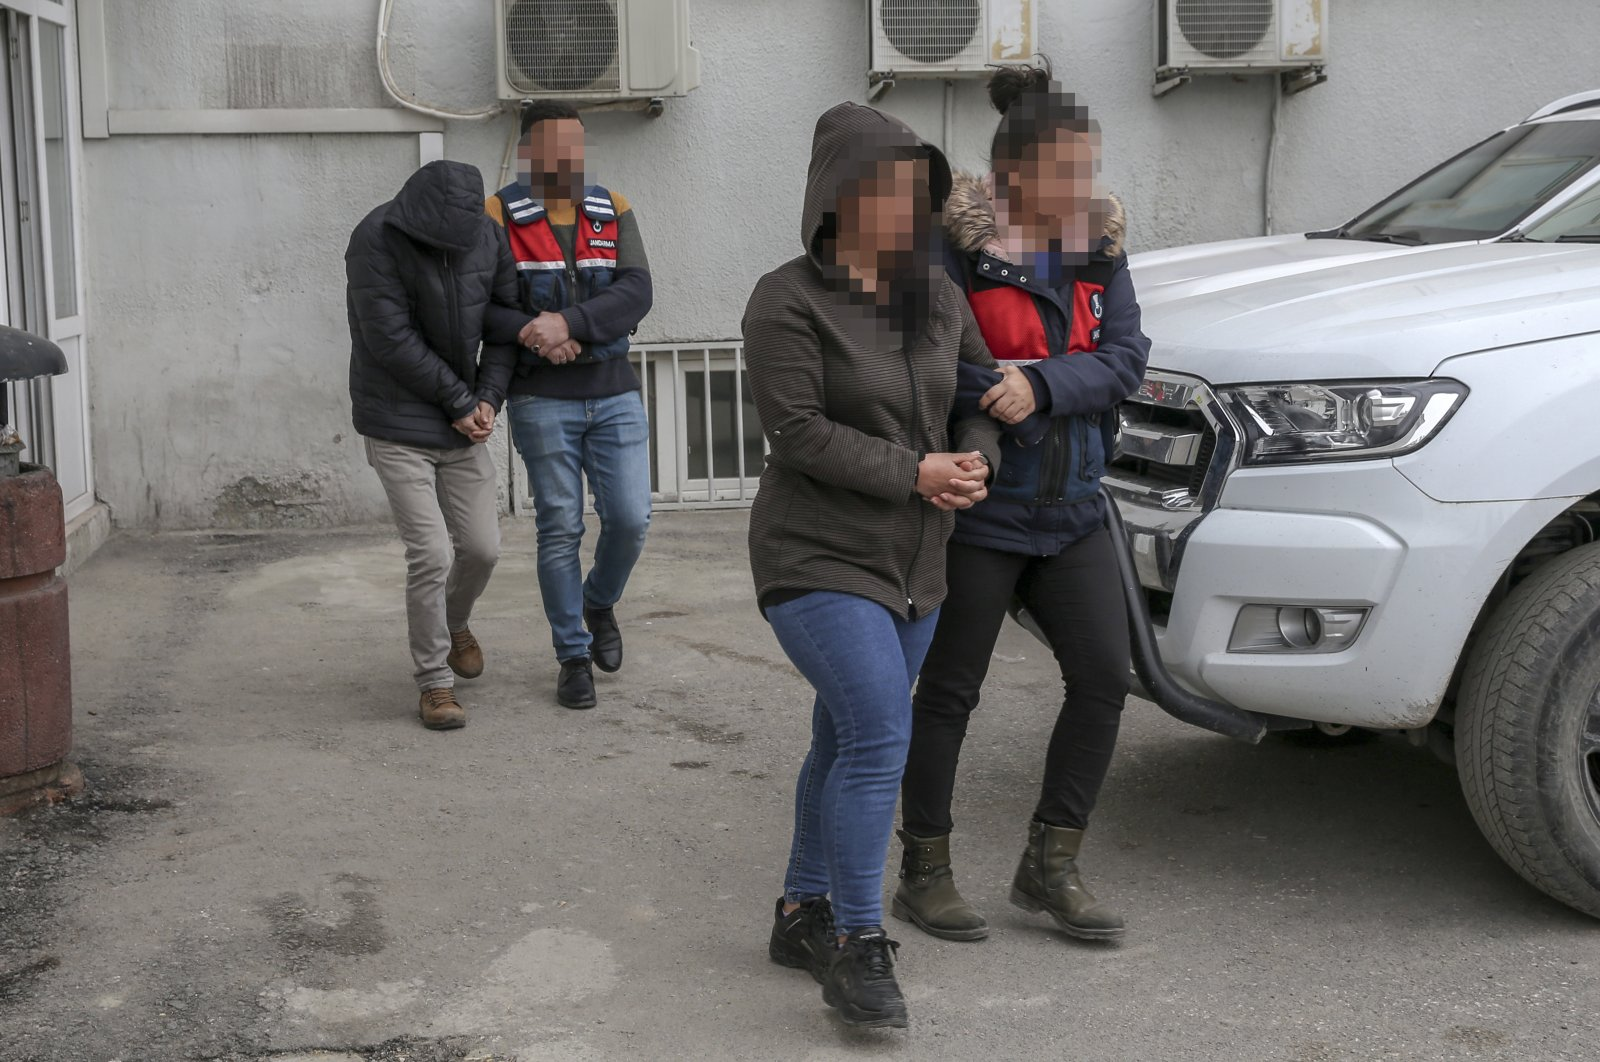 Captured terrorists, one of whom was a woman, were both members for more than 20 years and were revealed to be the personal bodyguards of Murat Karayılan, the PKK's acting leader, and Cemil Bayık, one of the masterminds behind some of the group's terrorist attacks, Monday, March 16, 2020. (AA)